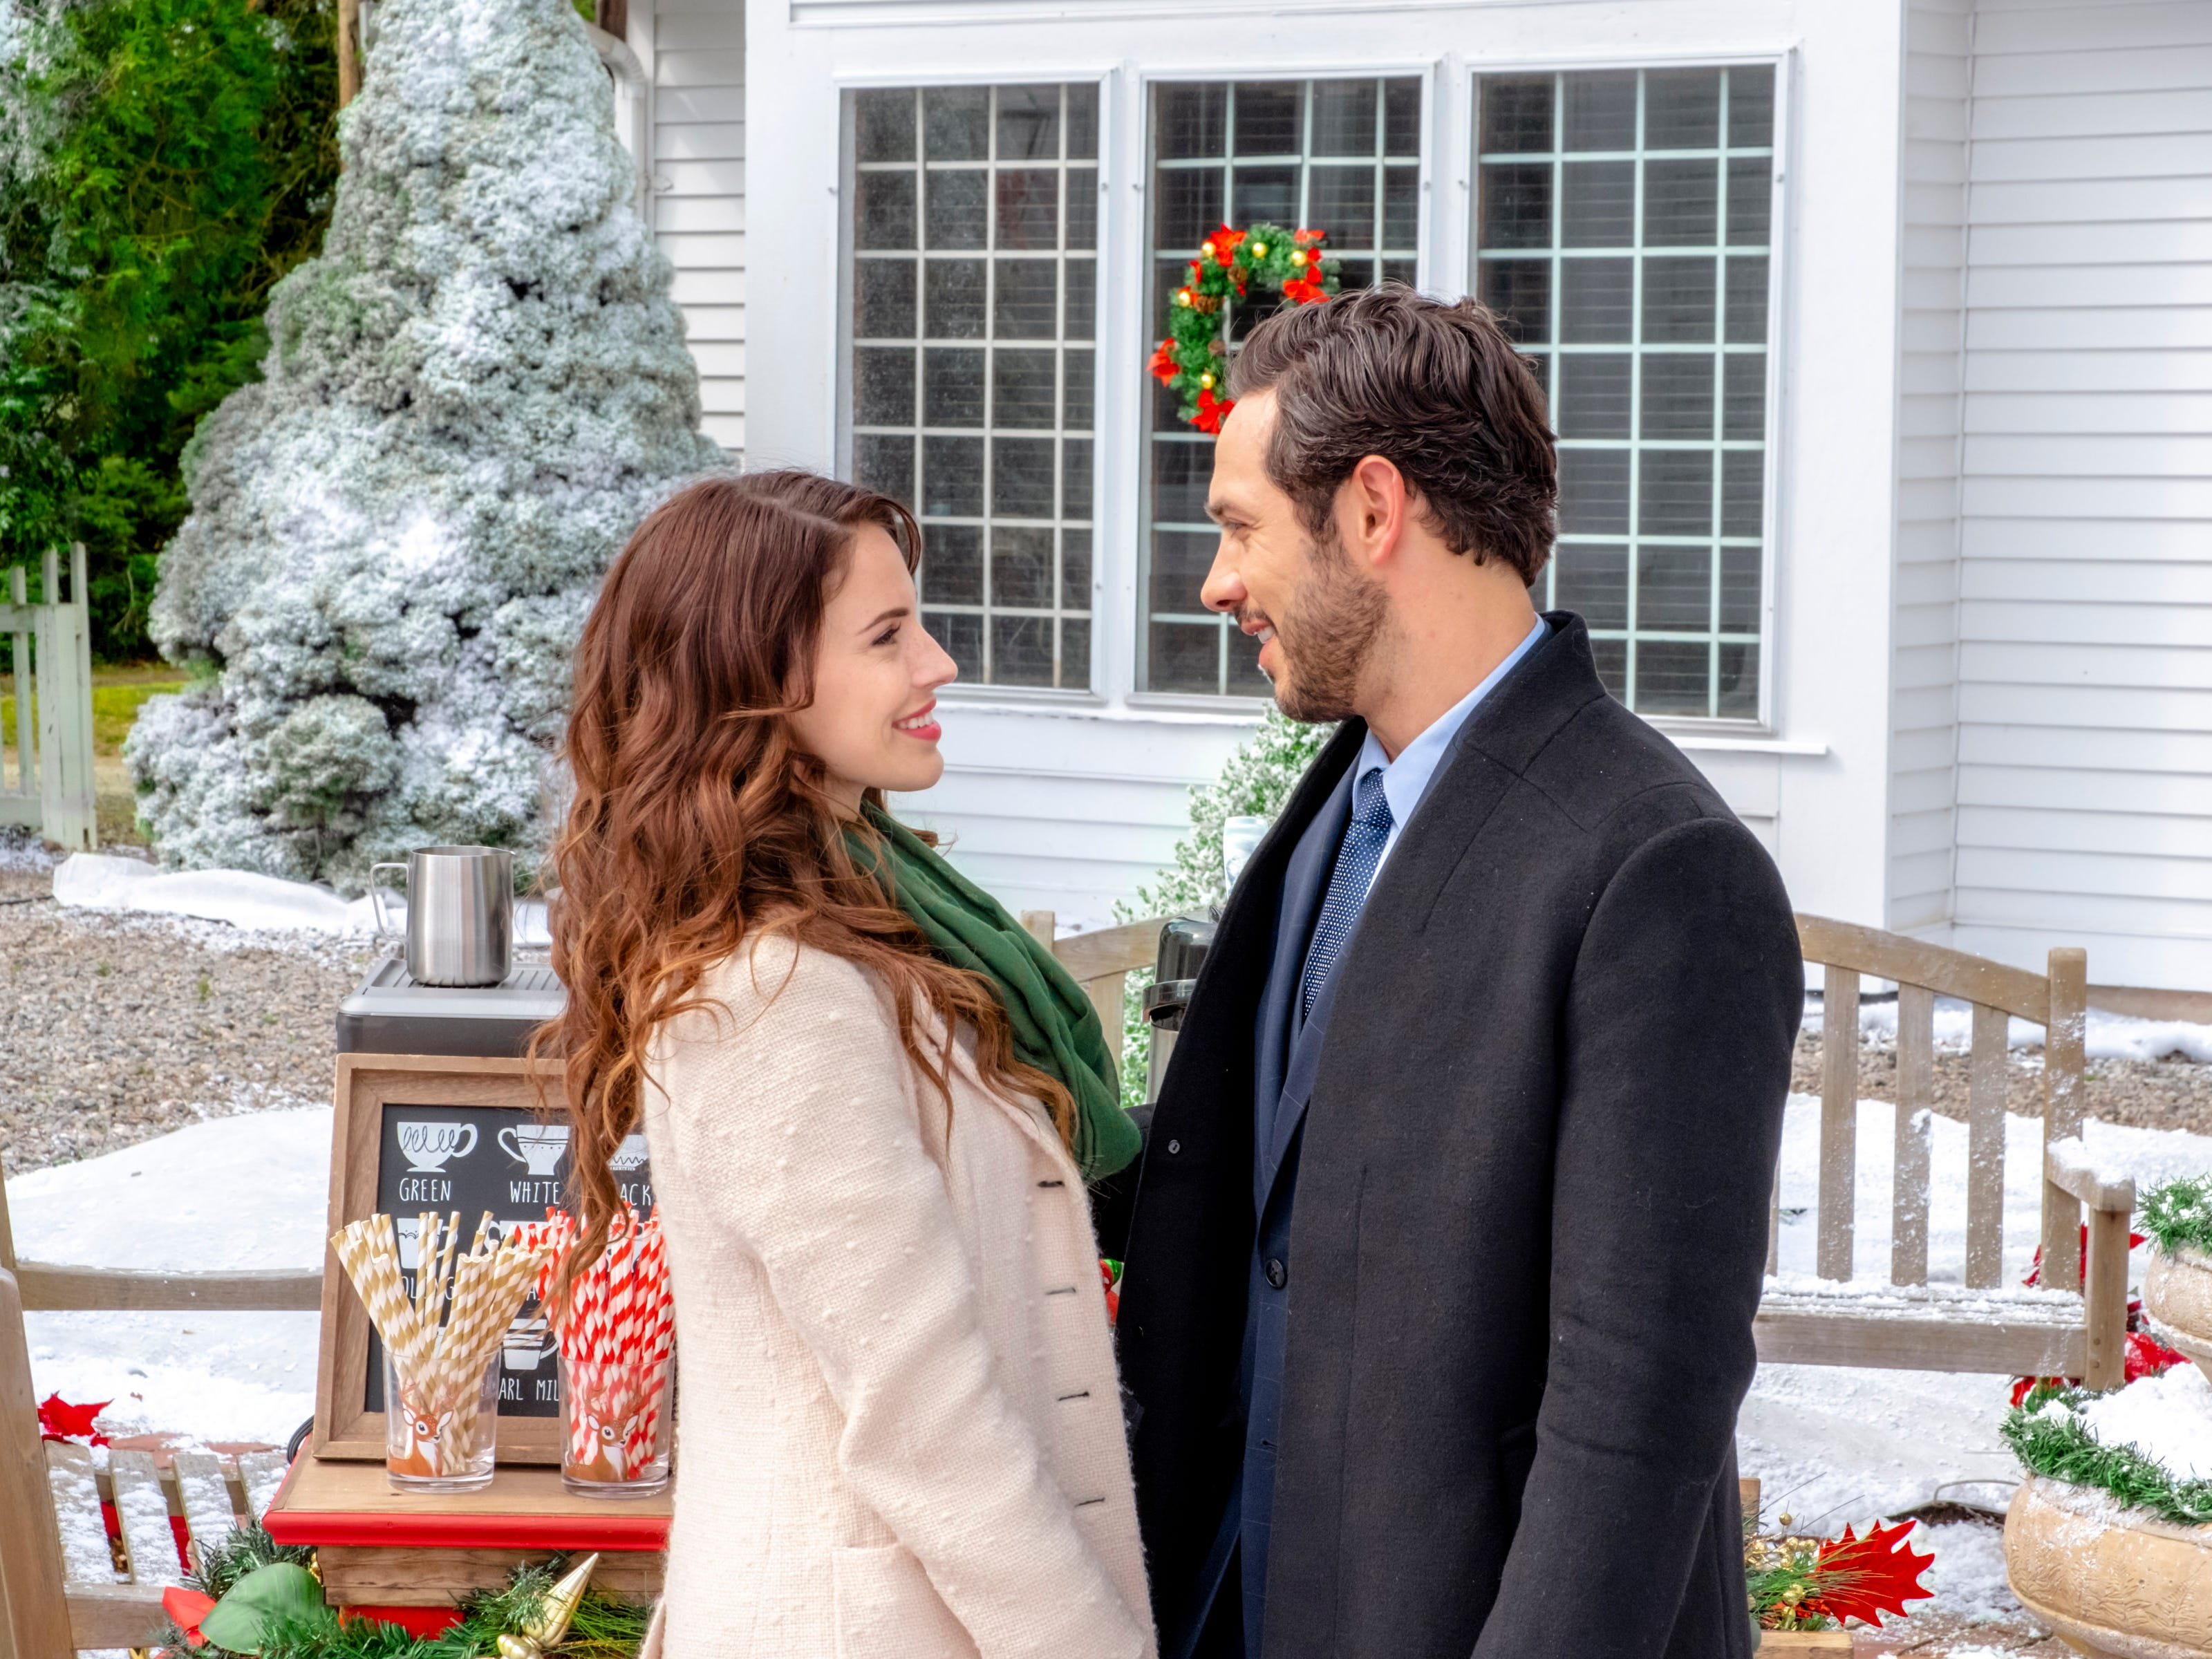 """""""Christmas at Pemberley Manor"""" (Hallmark, Oct. 27, 9 EDT/PDT): Jessica Lowndes is Elizabeth, a New York event planner who faces off against Darcy (Michael Rady), a billionaire whose ideas could thwart Elizabeth's holiday festival."""